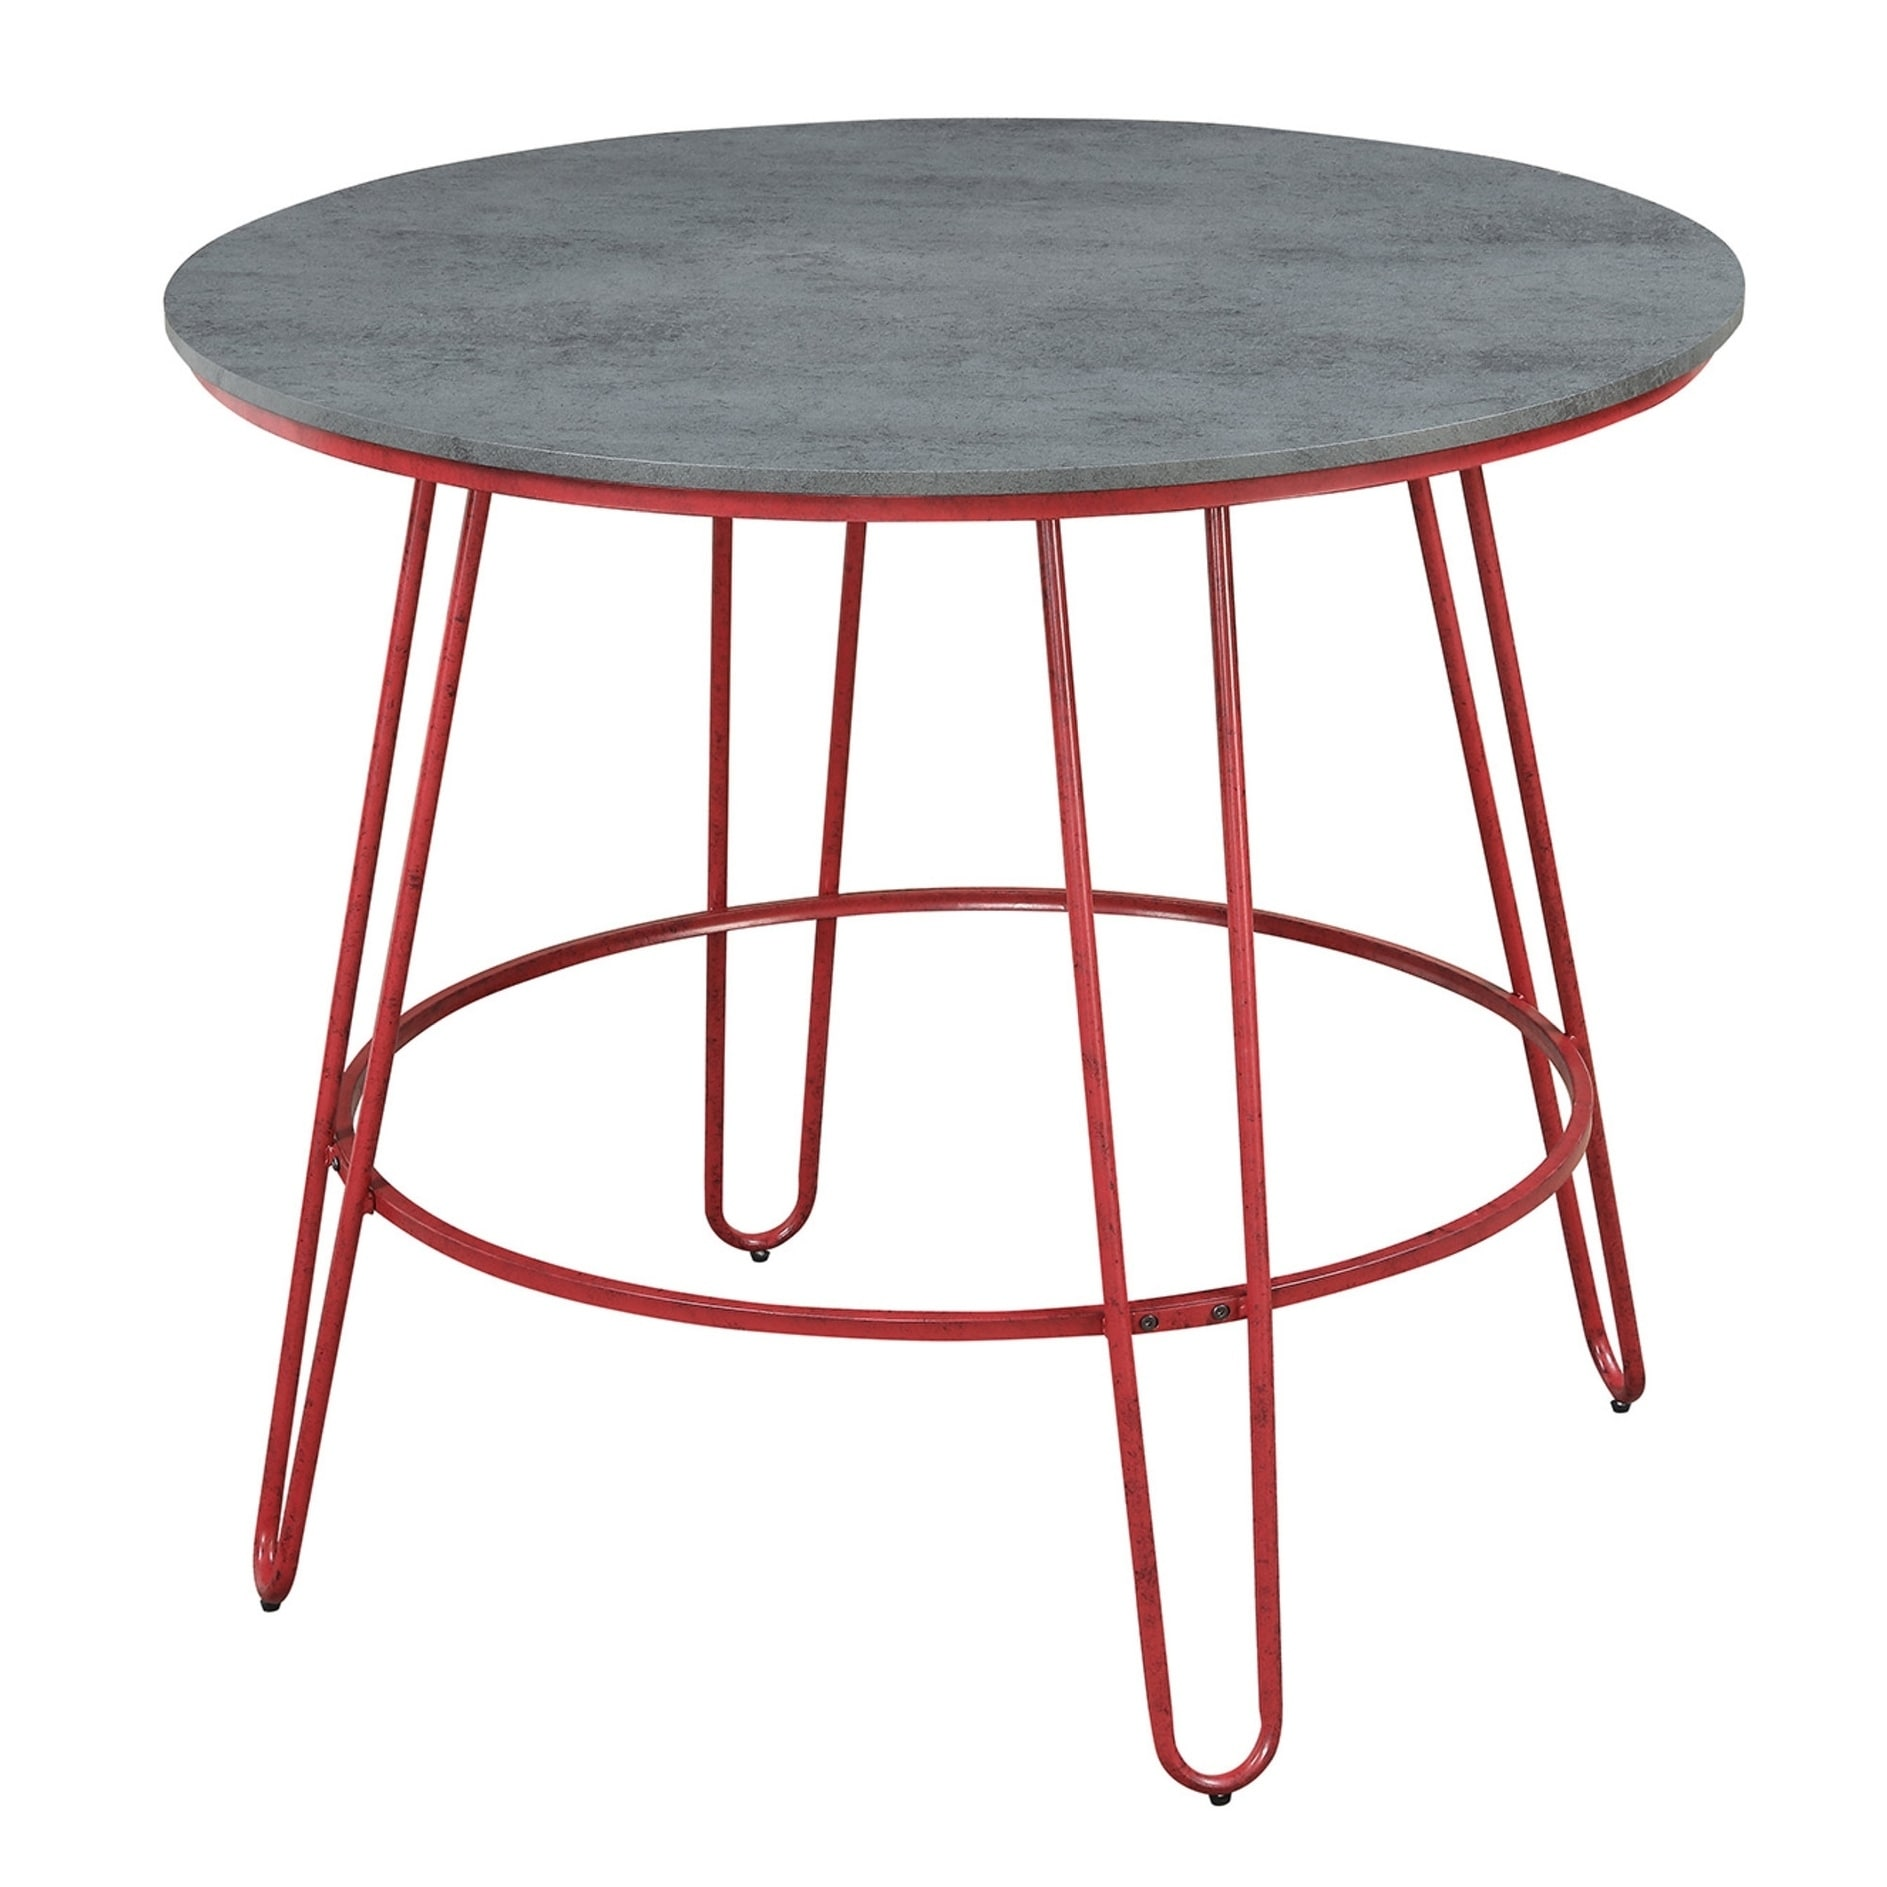 Emerald Home Langston Barn Red And Smokey Gray Round Pub Height Dining Table With Top Metal Legs